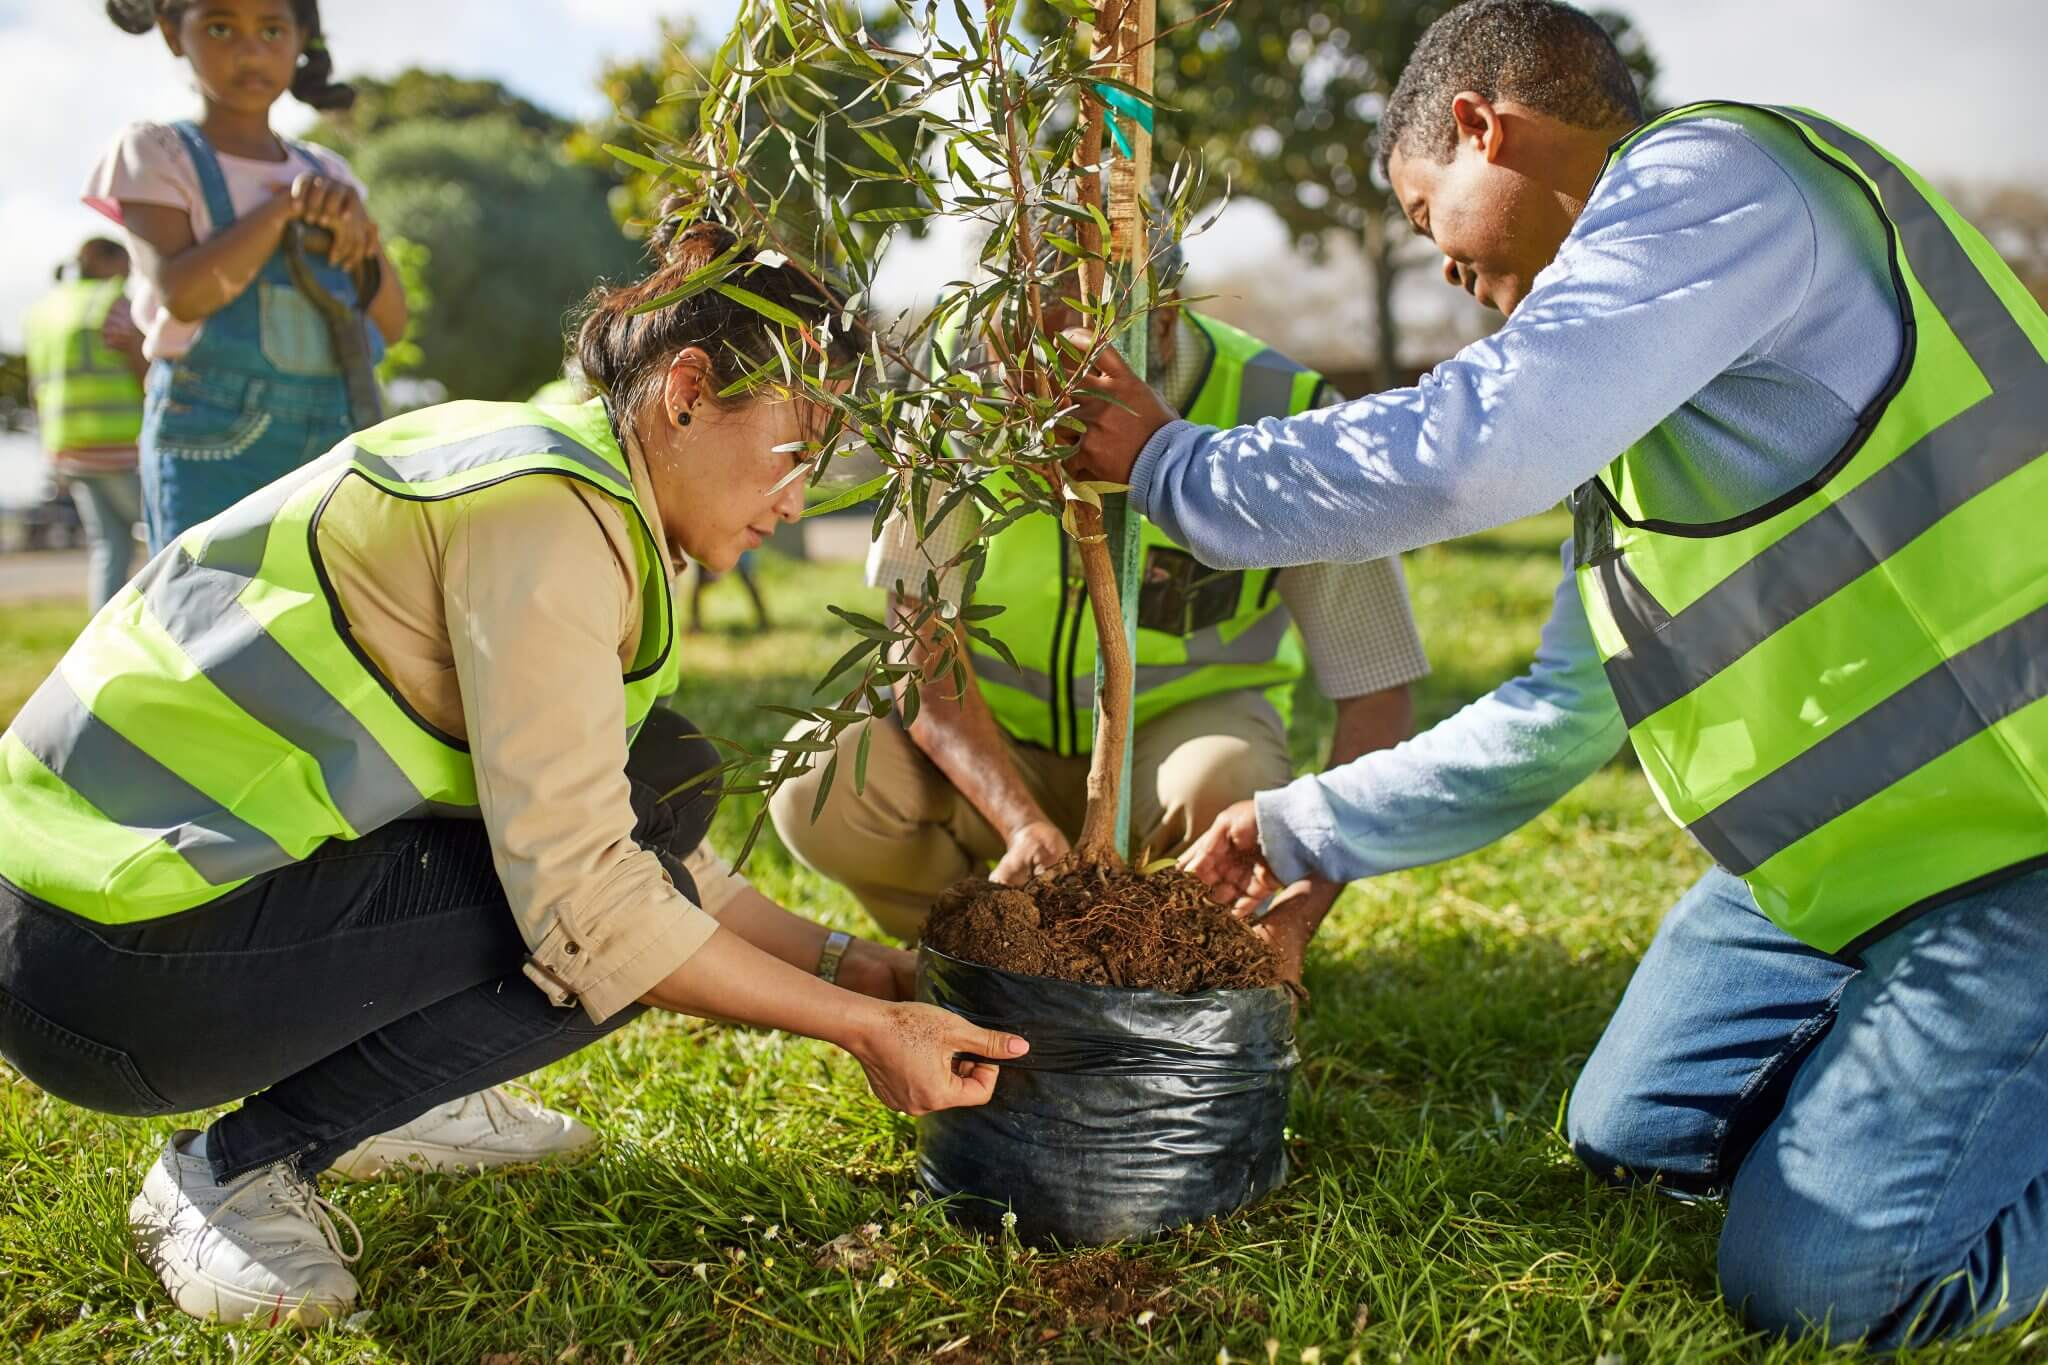 Tree Planting-Tampa's Best Tree Trimming and Tree Removal Services-We Offer Tree Trimming Services, Tree Removal, Tree Pruning, Tree Cutting, Residential and Commercial Tree Trimming Services, Storm Damage, Emergency Tree Removal, Land Clearing, Tree Companies, Tree Care Service, Stump Grinding, and we're the Best Tree Trimming Company Near You Guaranteed!